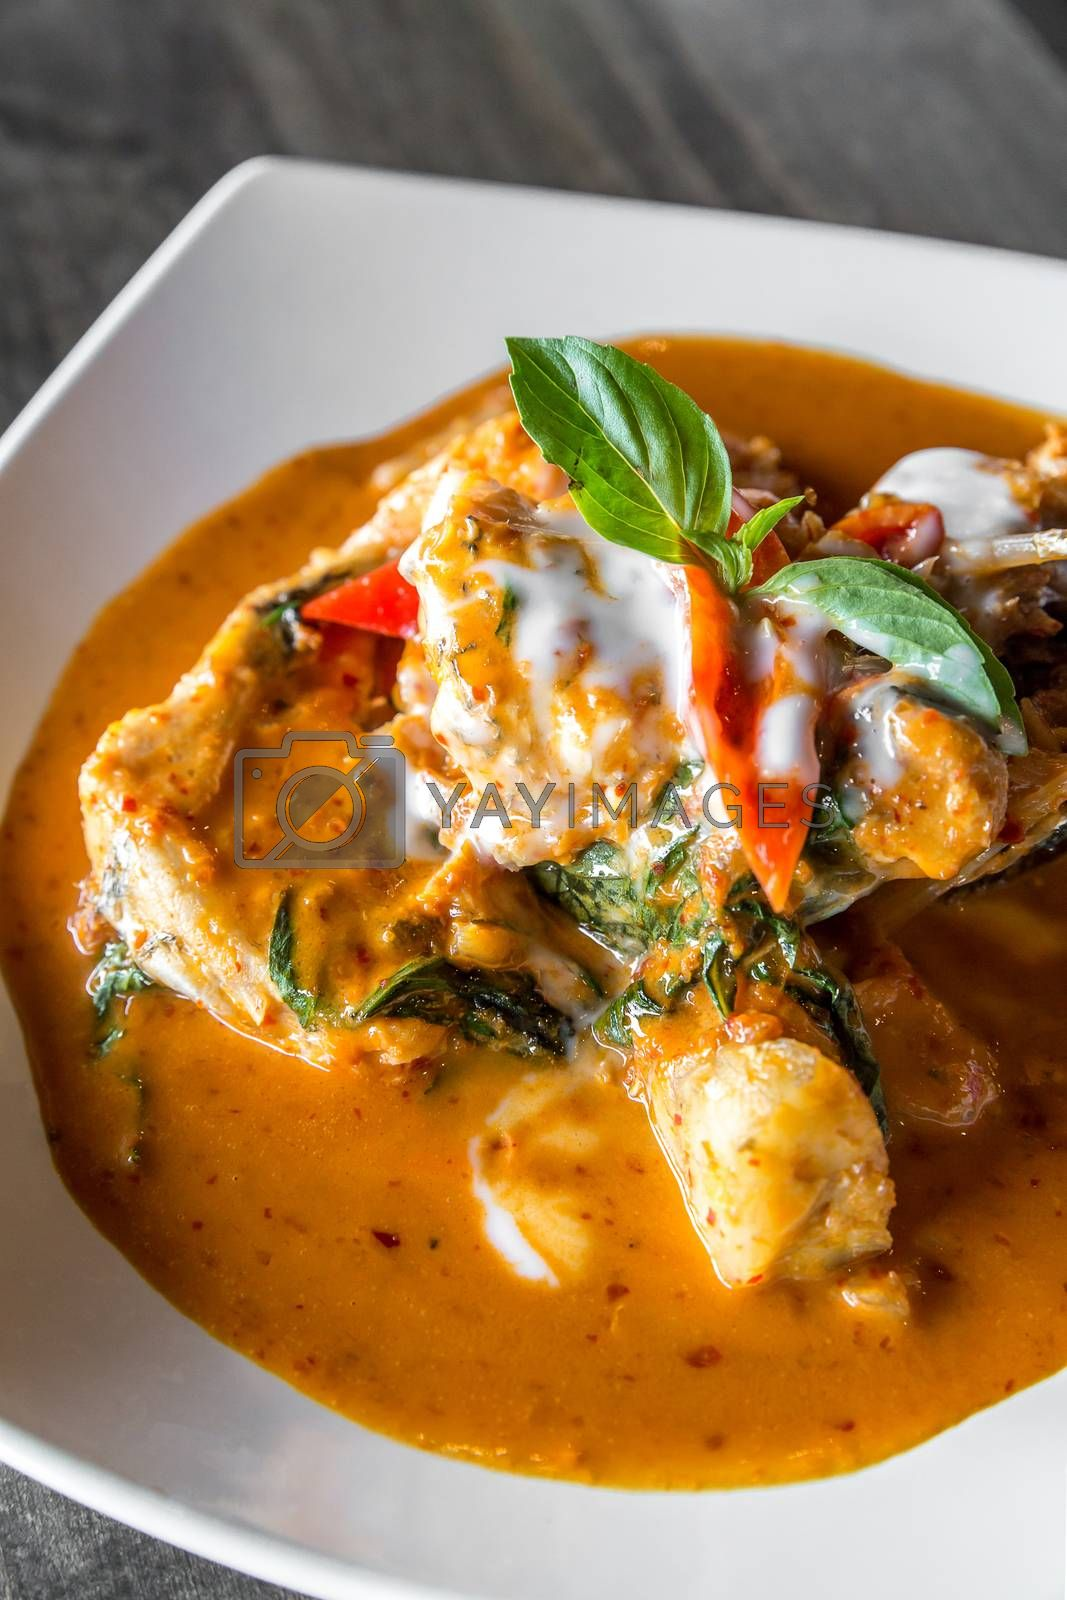 Fried grouper Fish with Red Curry Paste Chu Chee Pla